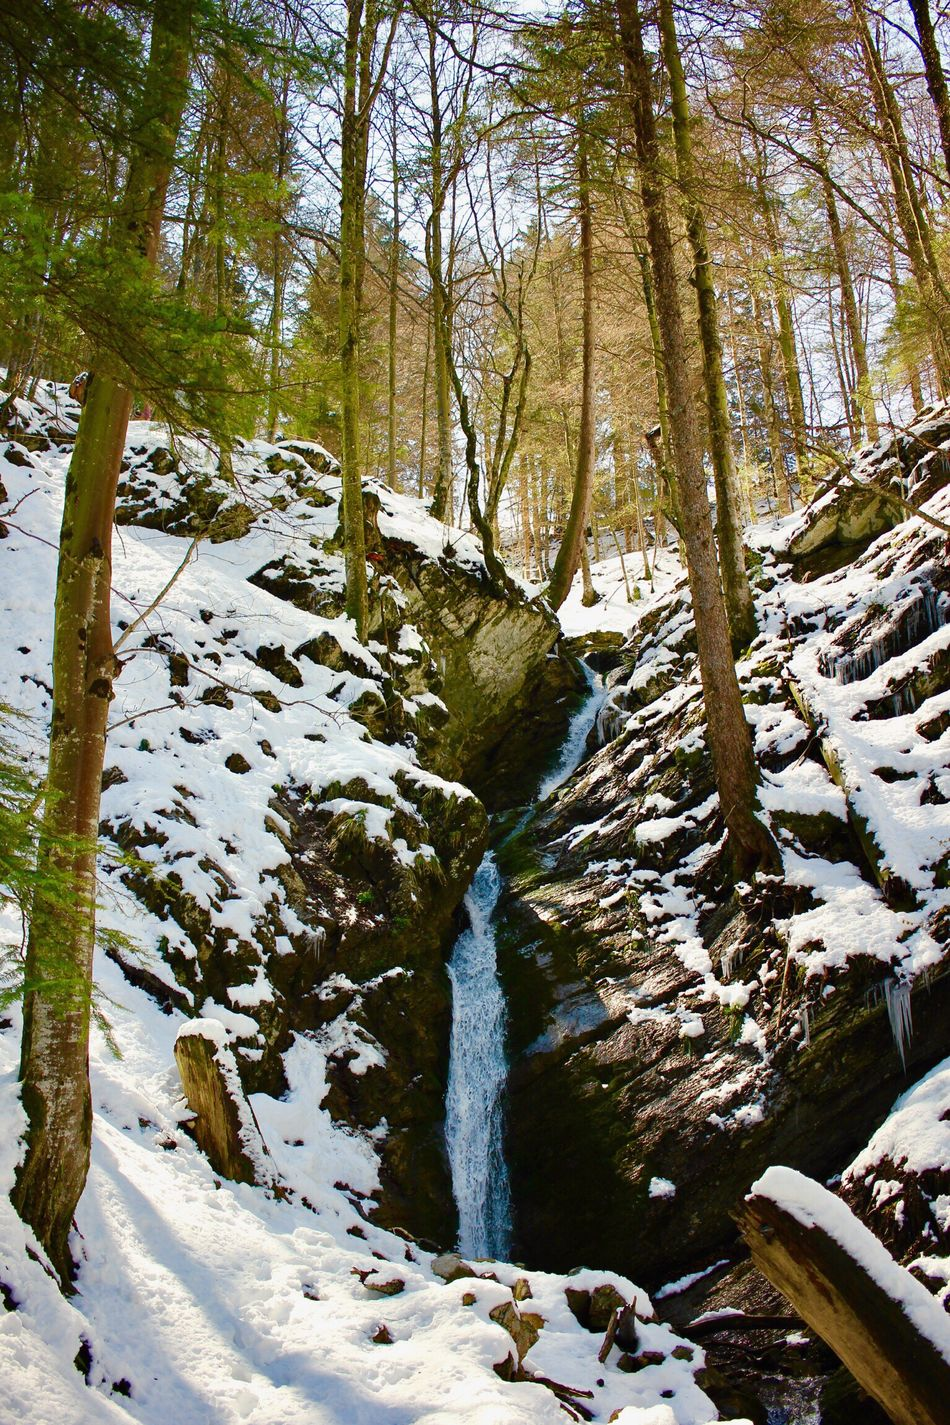 Nature Flowing Water Waterfall Beauty In Nature Forest Tree Water Scenics Tranquility No People Landscape Outdoors River Travel Destinations Cold Temperature Tree Trunk Snow Switzerland Switzerland Alps Appenzell EyeEmNewHere